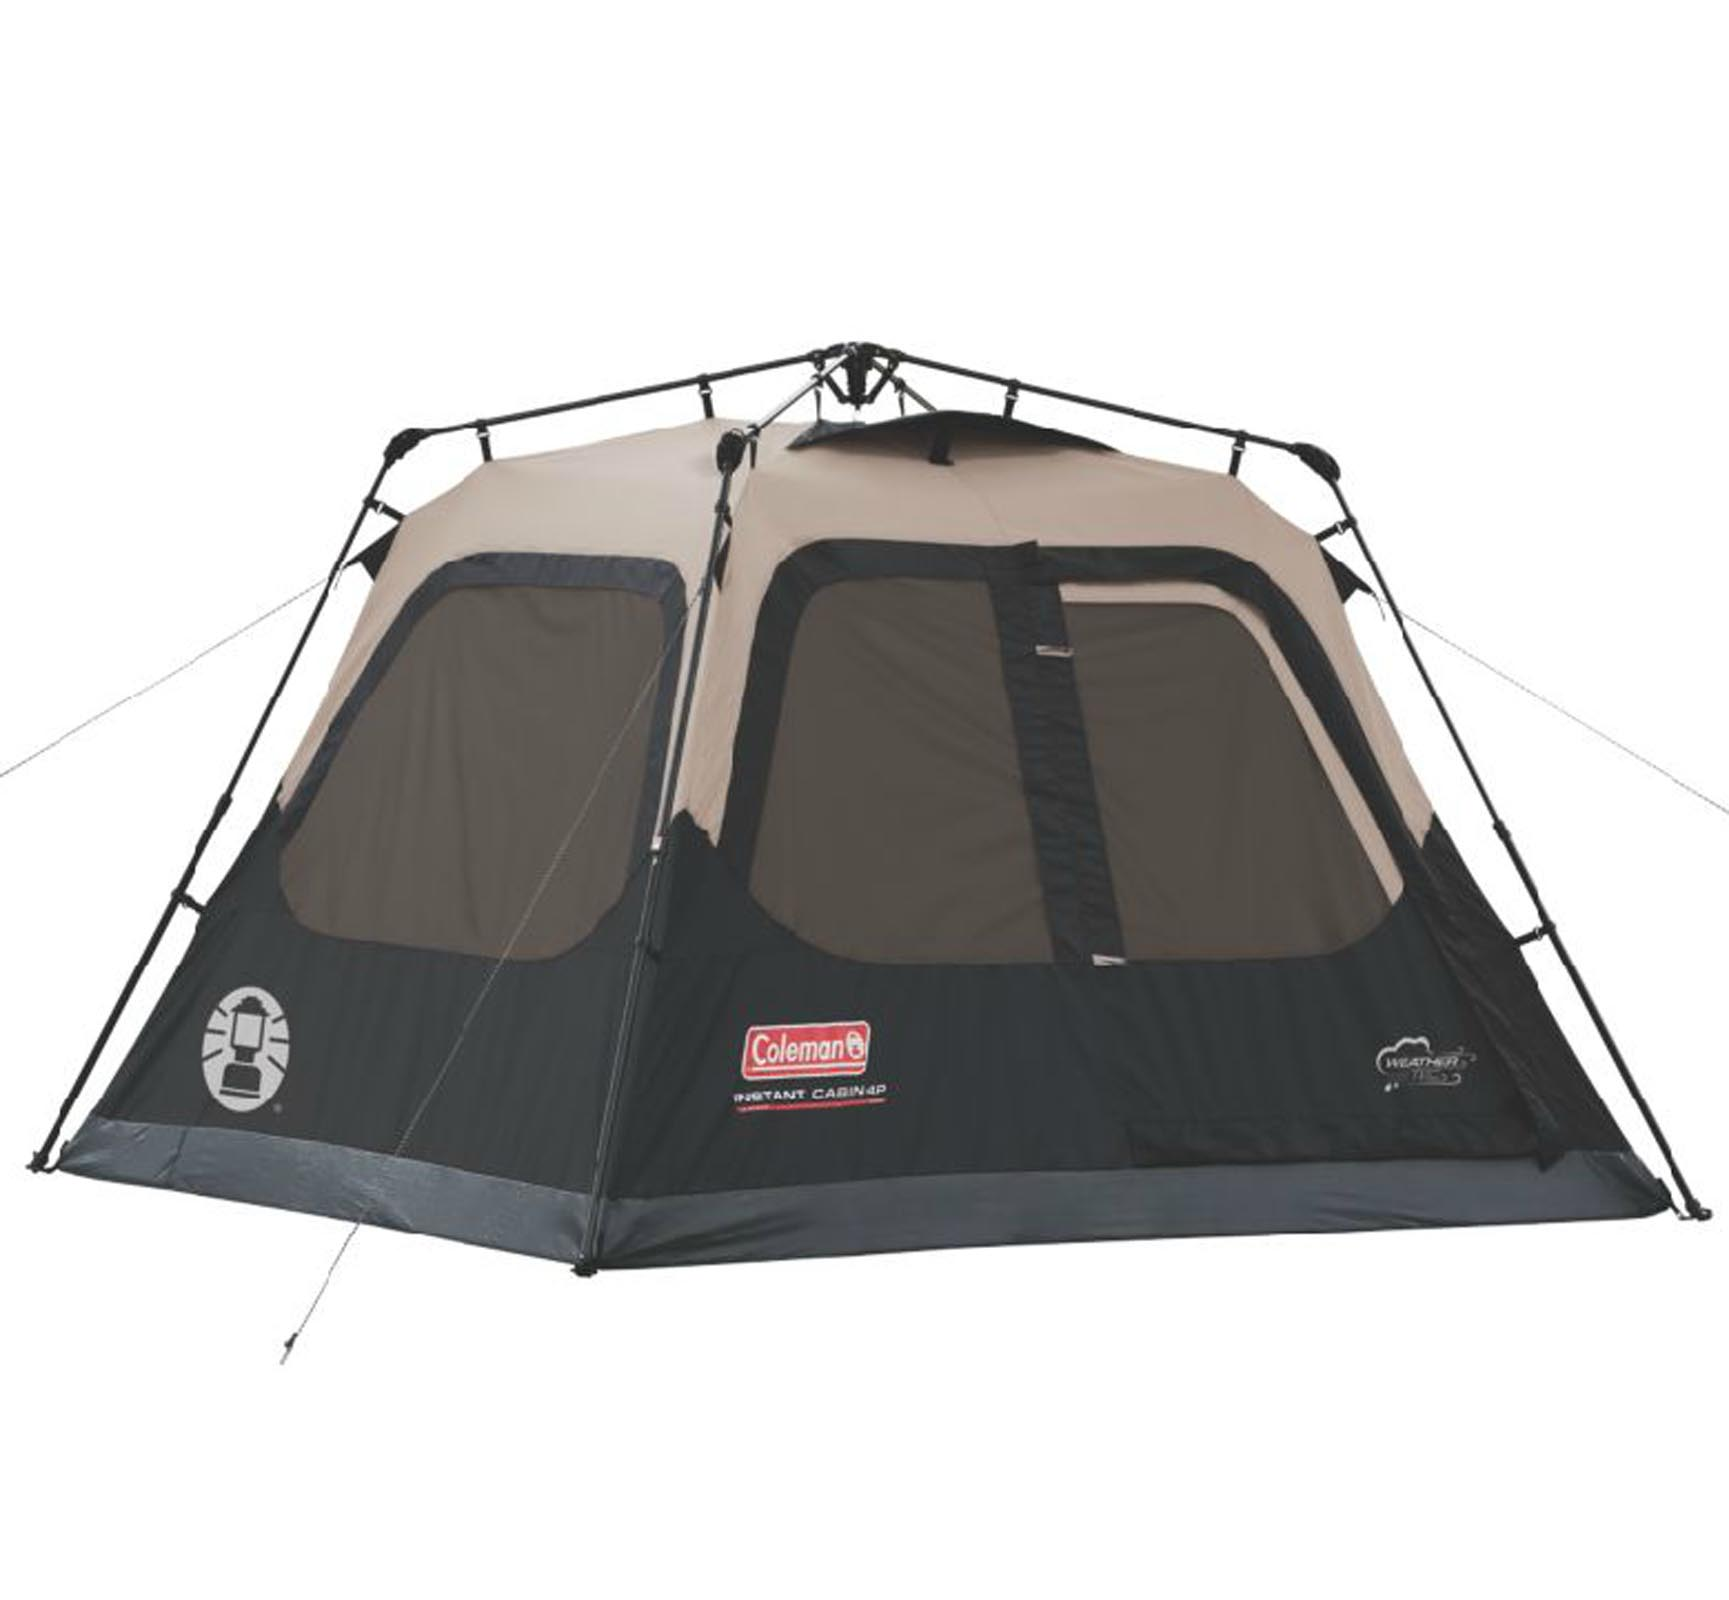 Coleman Instant Set-Up 4-Person Tent 8u0027 ...  sc 1 st  Walmart : coleman tent instant 8 person - memphite.com